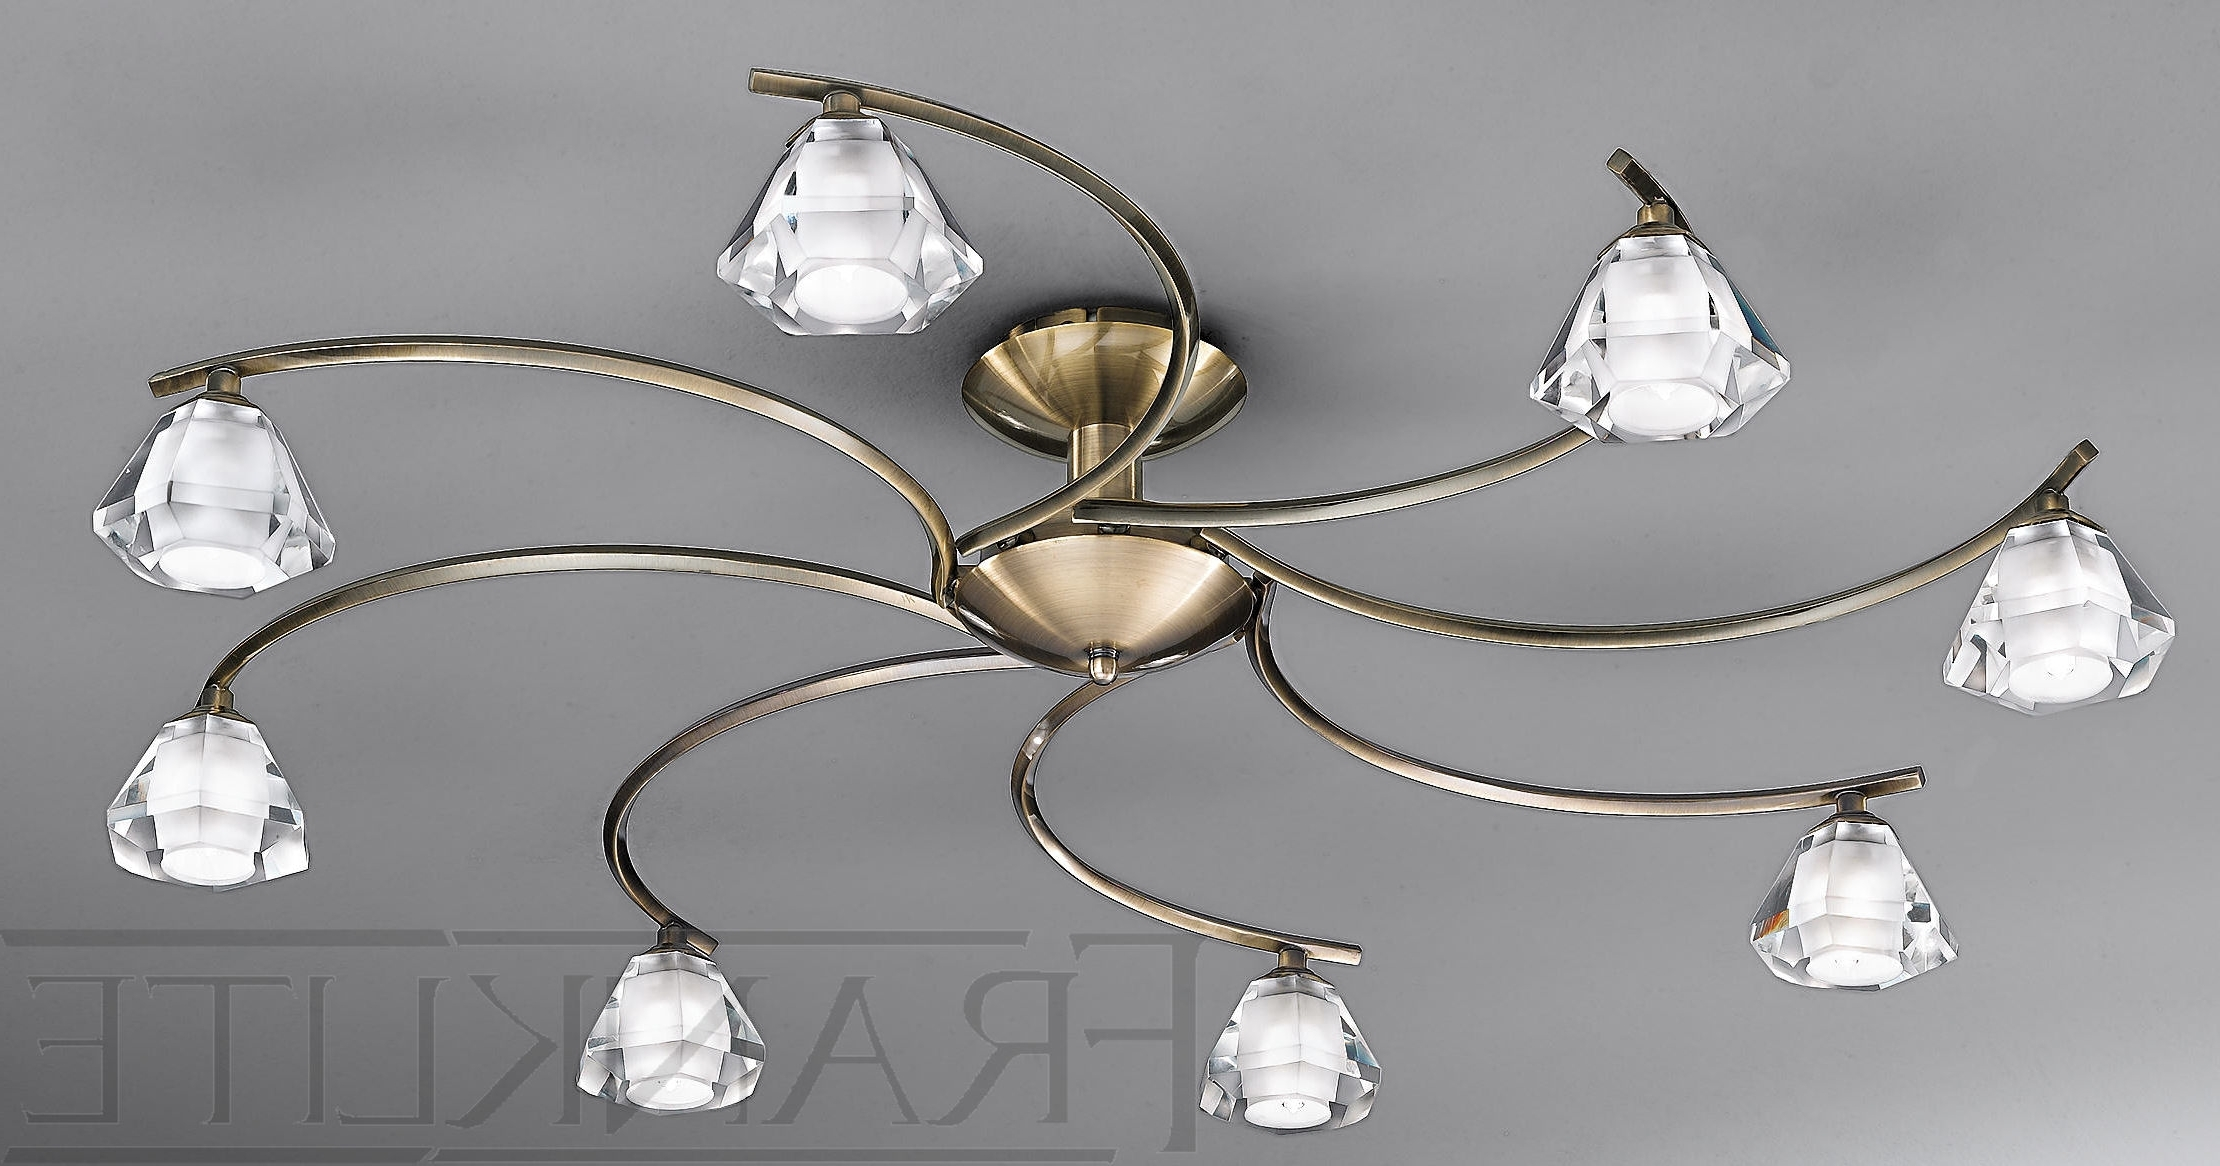 Lighting For Low Ceilings, Dramatic Lighting For Low Ceilings Design Pertaining To Famous Low Ceiling Chandeliers (View 5 of 15)